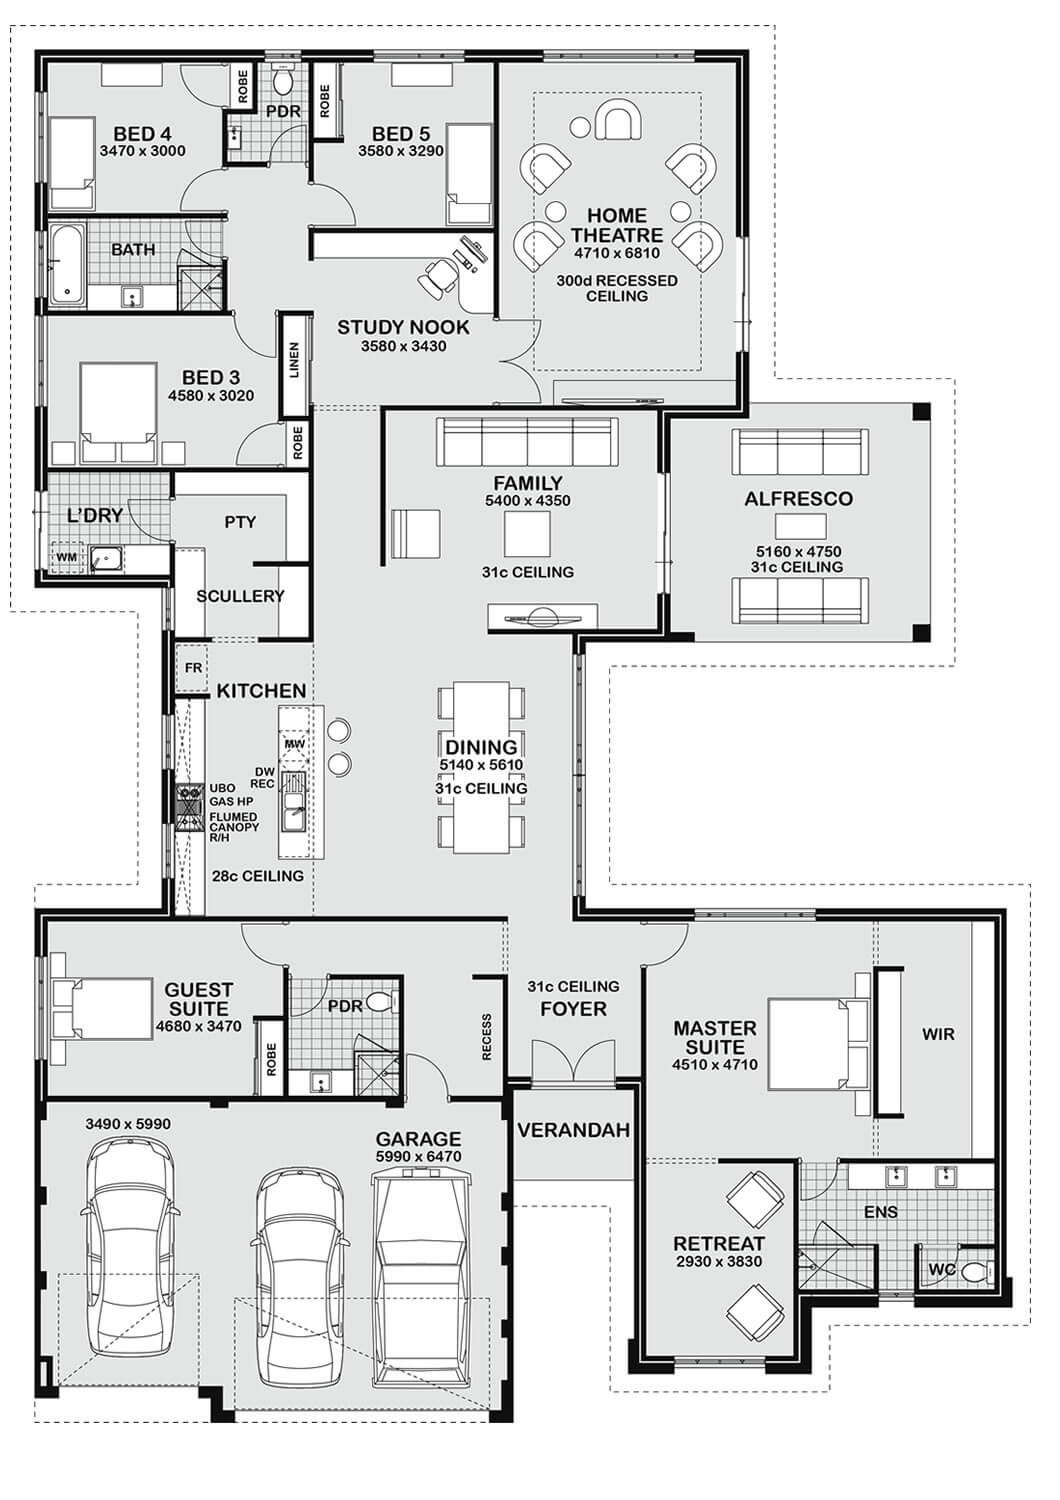 Floor plan friday 5 bedroom entertainer Floorplan com